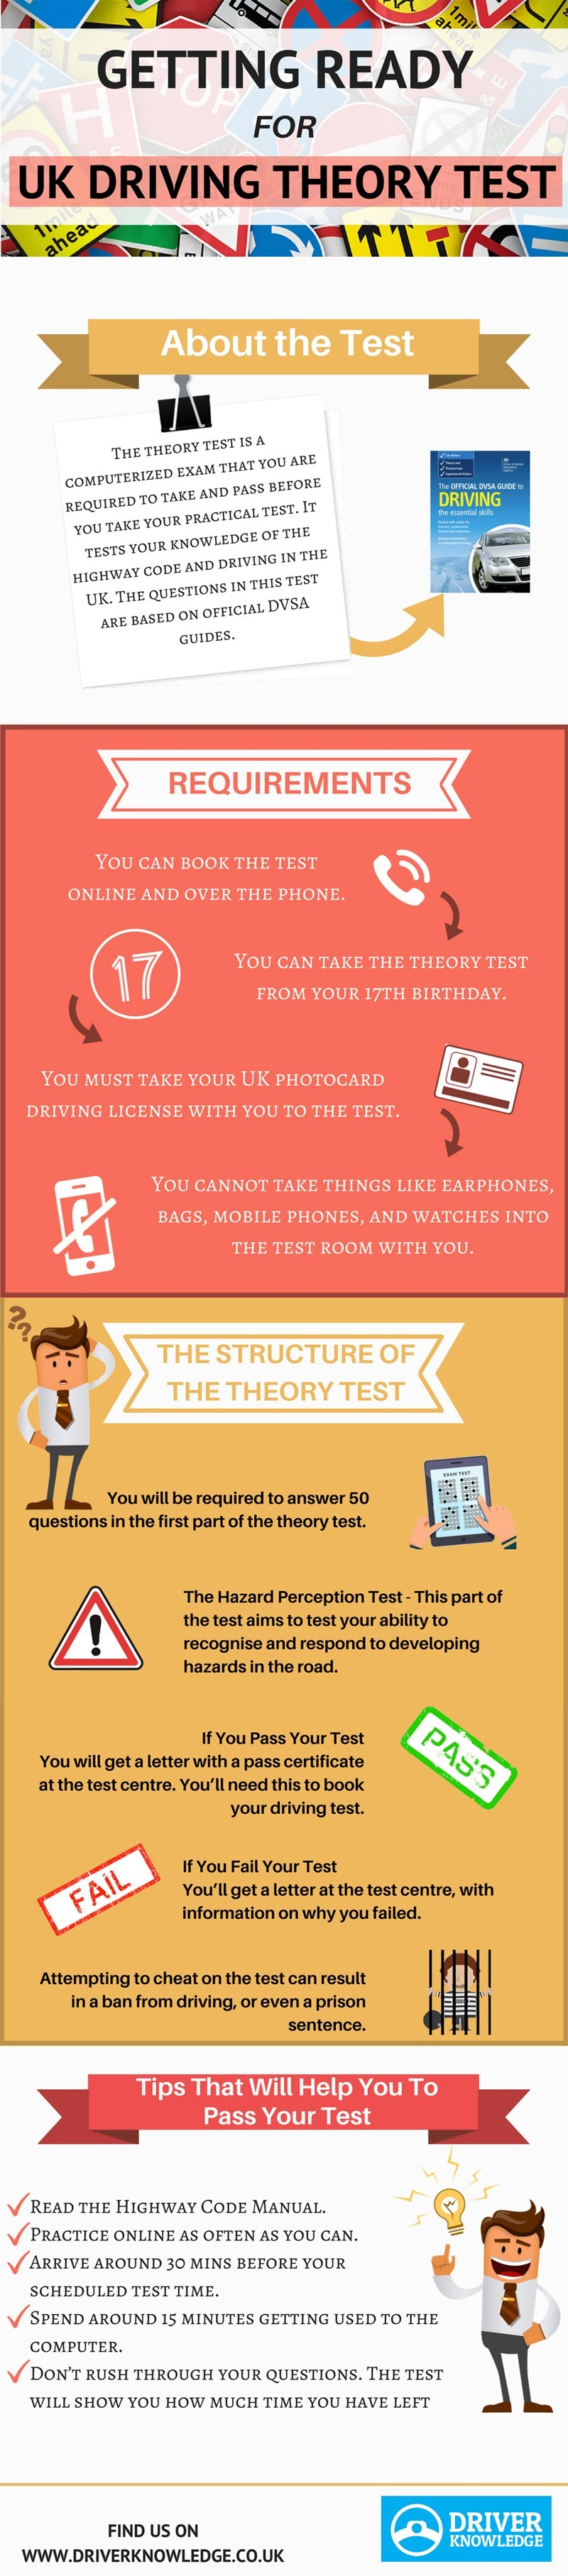 Getting Ready For UK Driving Theory Test #infographic